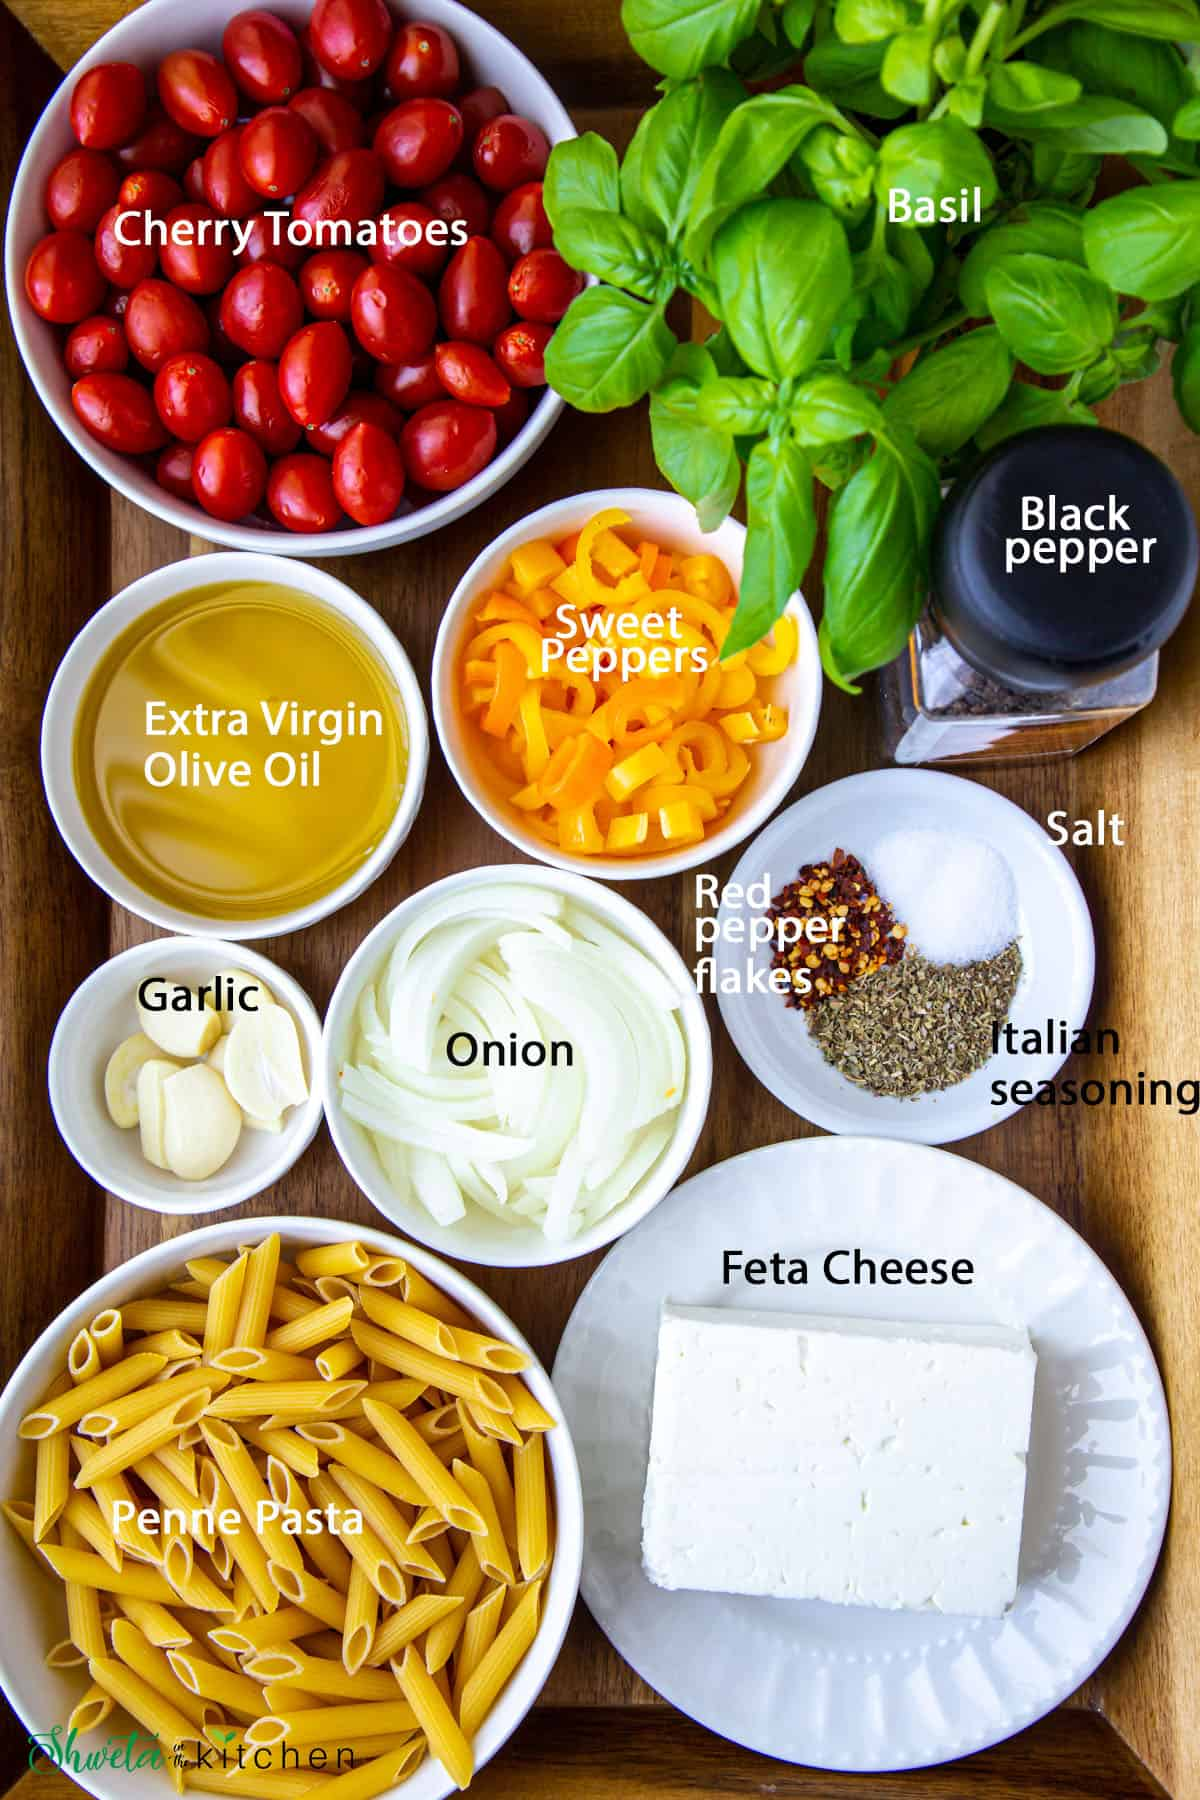 Baked Feta Pasta Ingredients in bowls on wooden surface